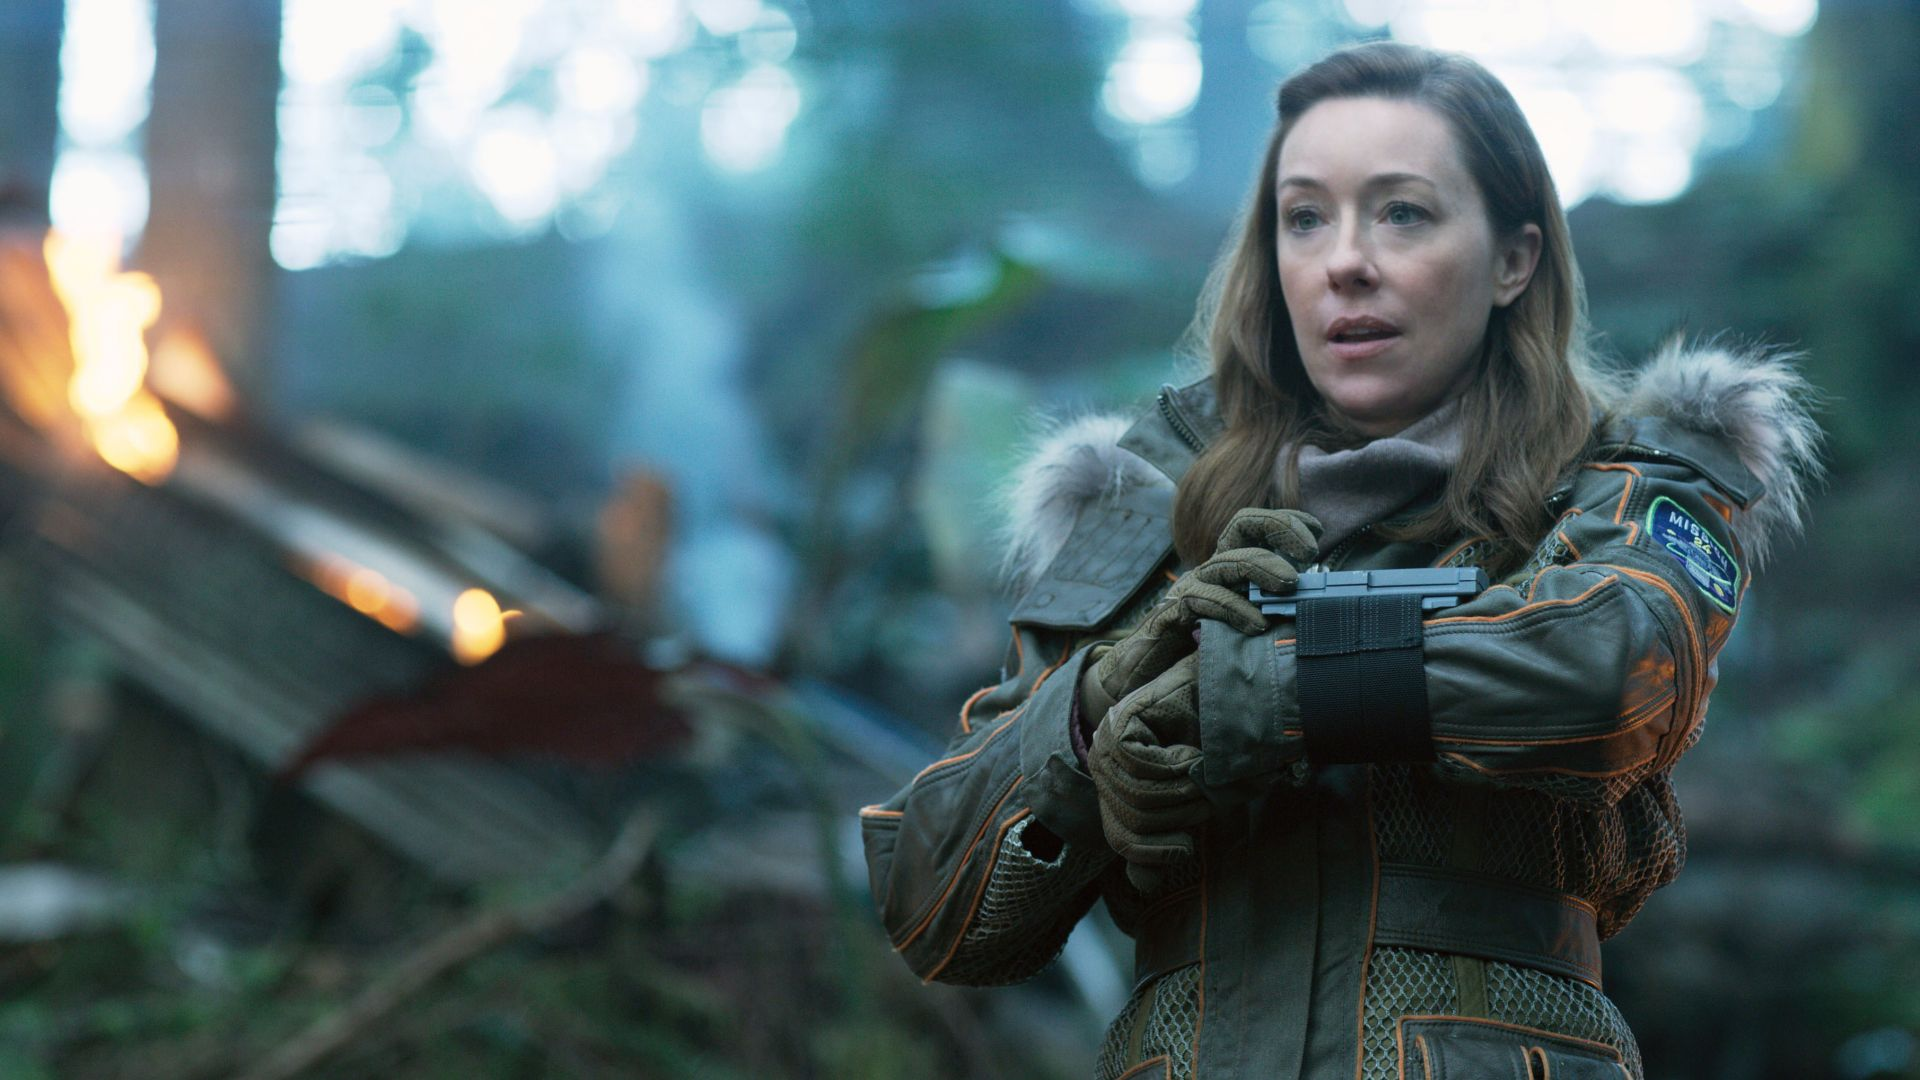 Lost In Space Season 1, Molly Parker, TV Series, 4k (horizontal)